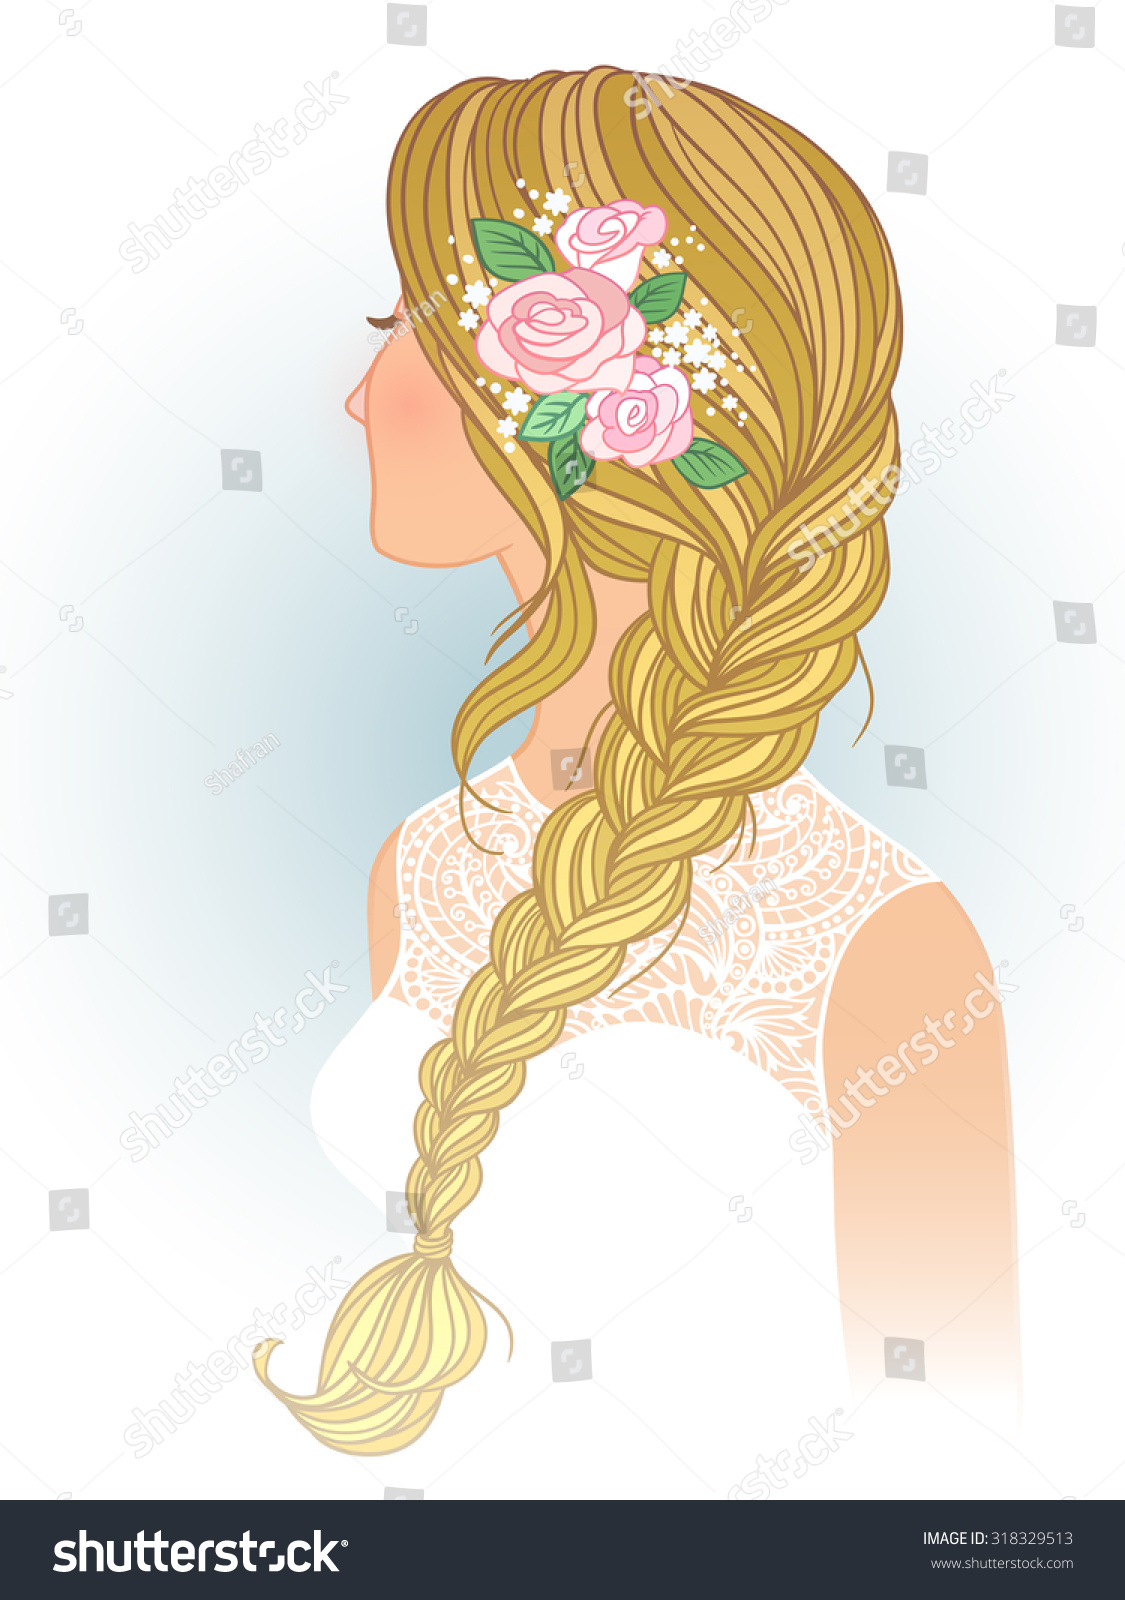 hight resolution of girl with tress wedding hair style with flowers from the back hand drawn vector